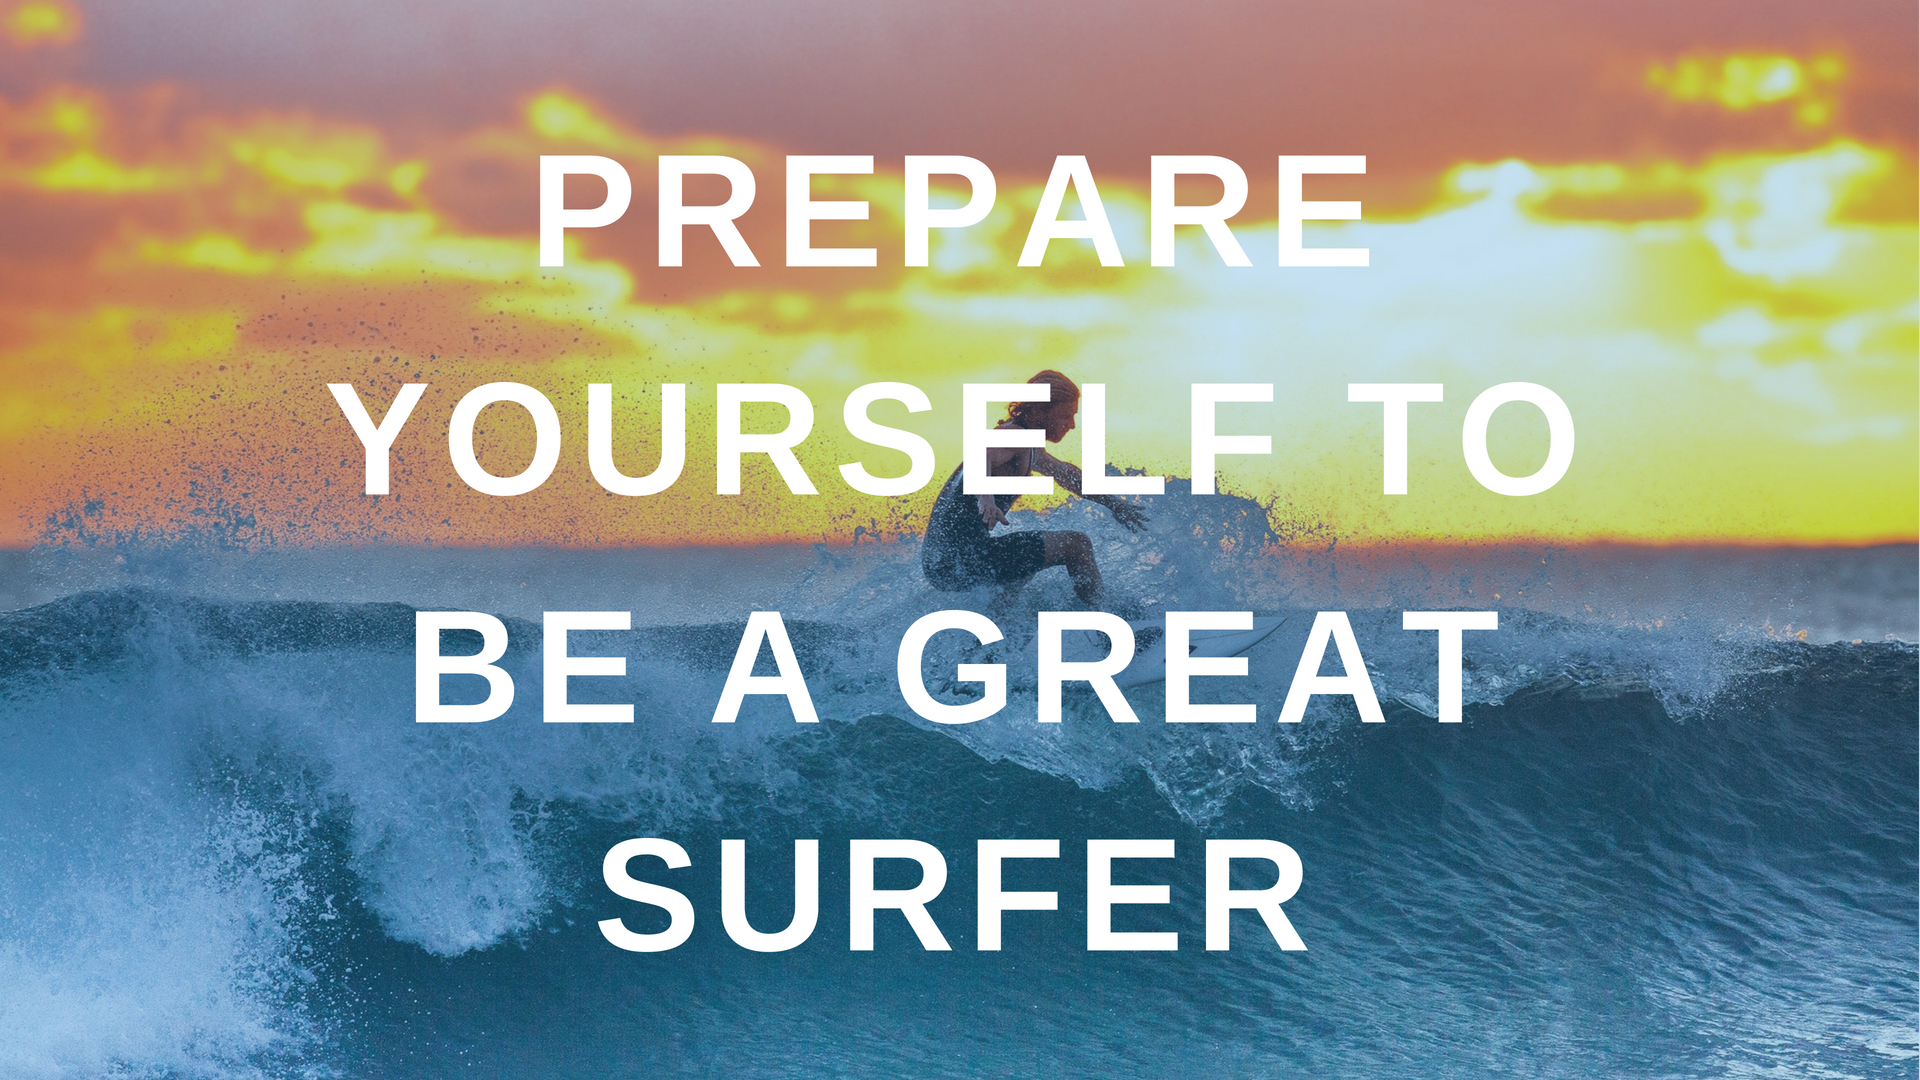 Prepare Yourself to Be a Great Surfer